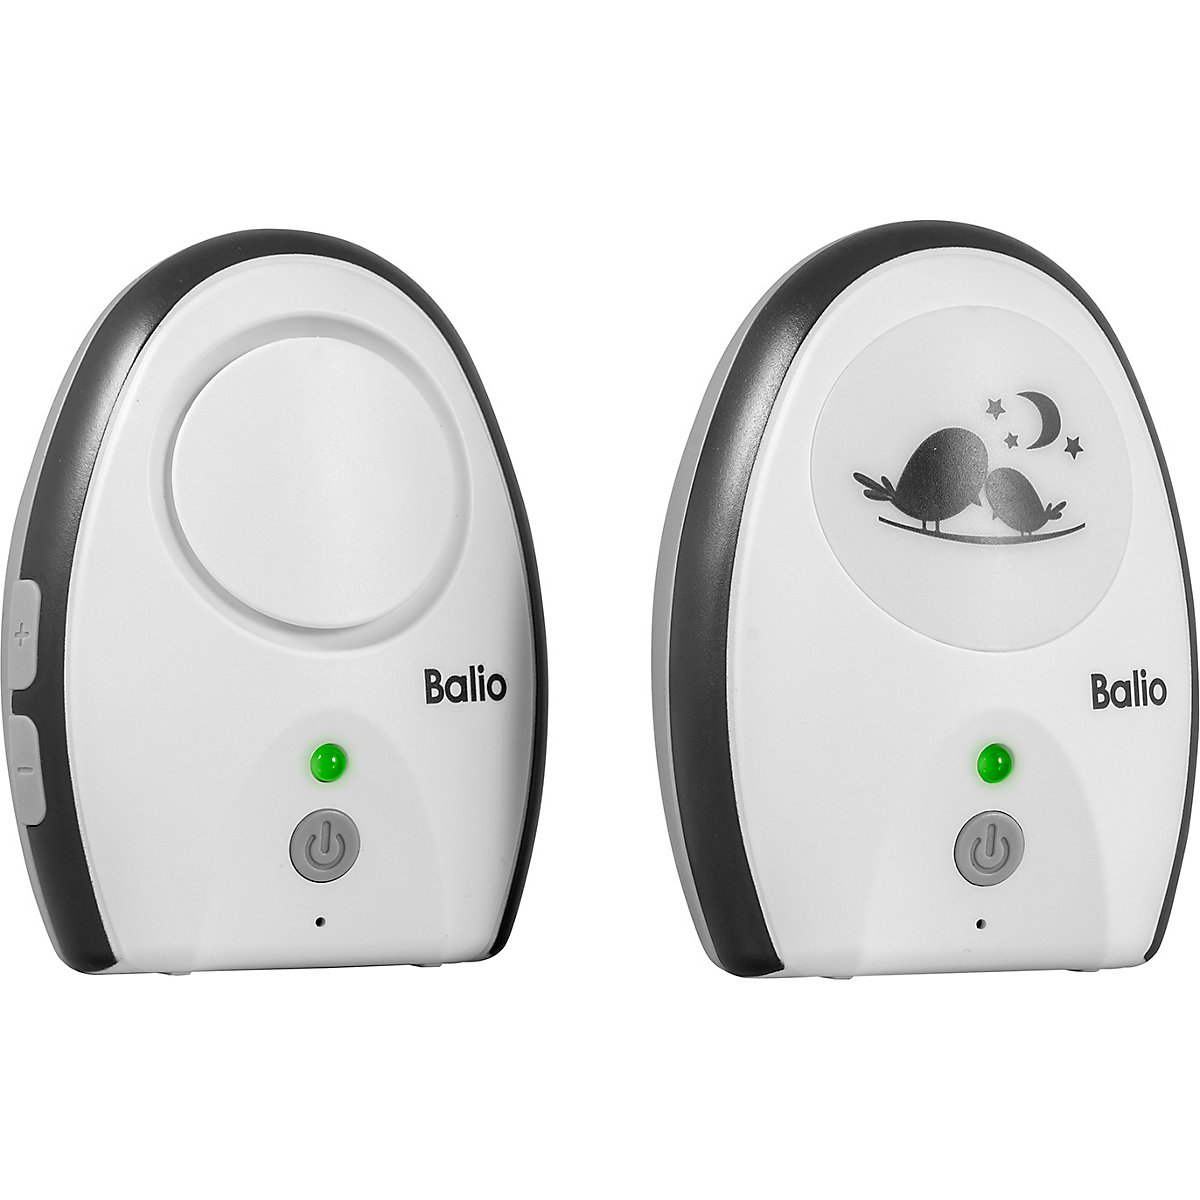 Baby Sleeping Monitors BALIO 4361097 Safety baby monitor control for children baby monitor switel bcc38